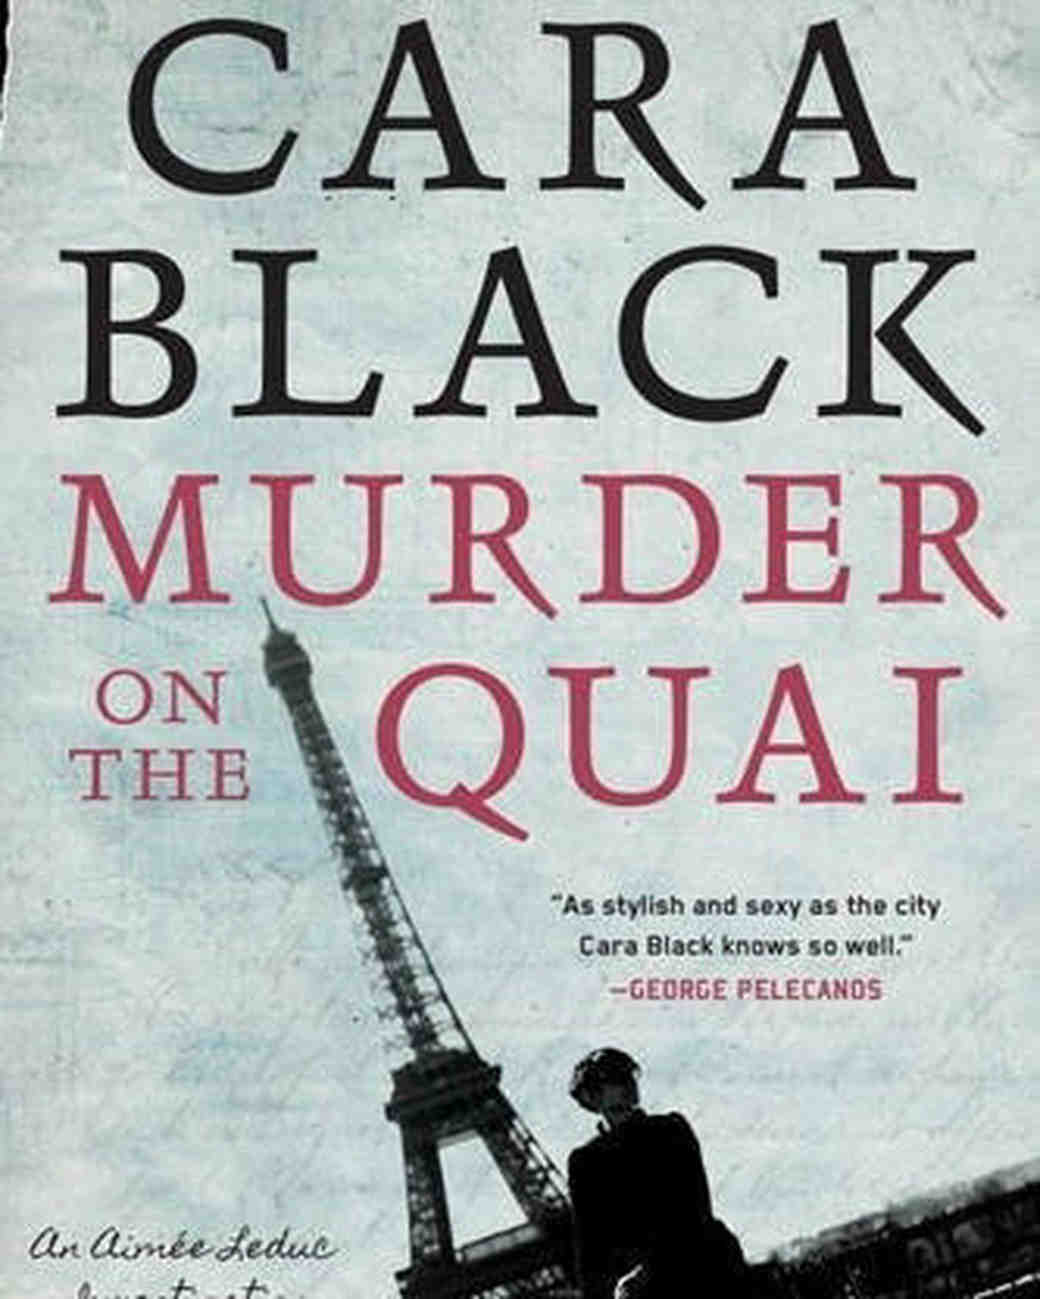 murder-on-the-quai-cover-cara-black-0616.jpg